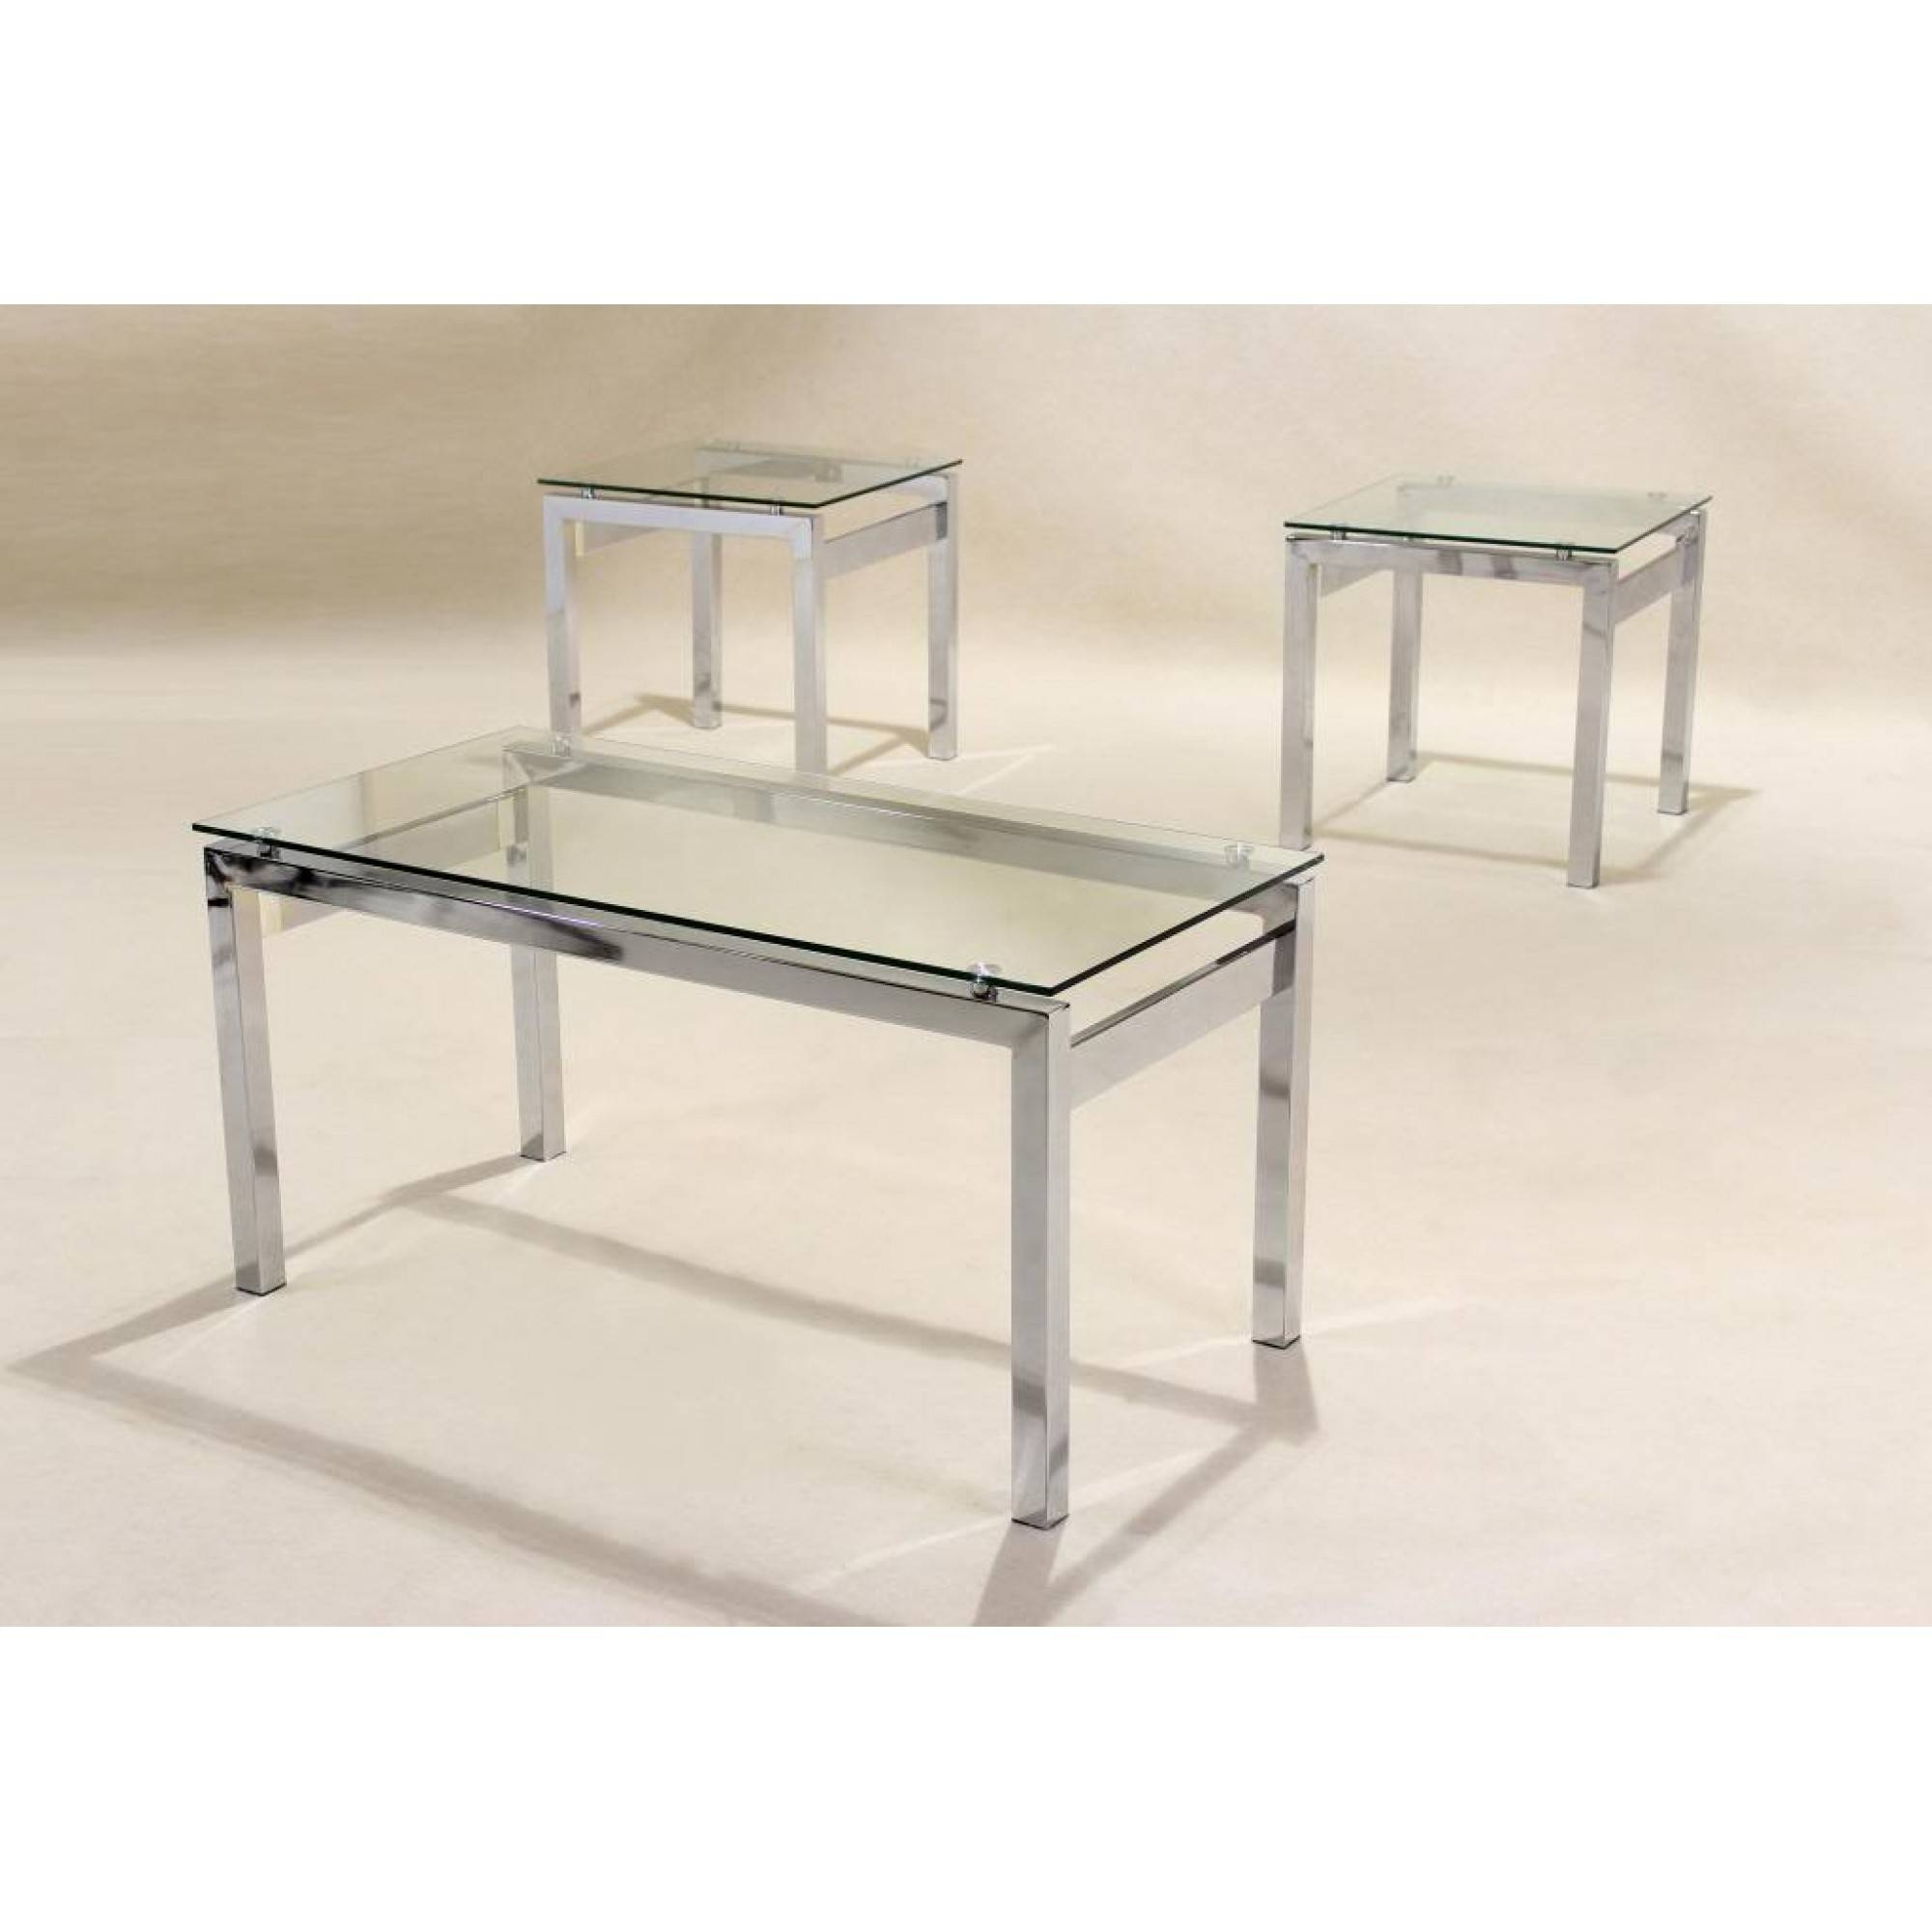 Furniture Glass And Chrome Coffee Table Ideas: Silver Rectangle within Glass Chrome Coffee Tables (Image 11 of 30)